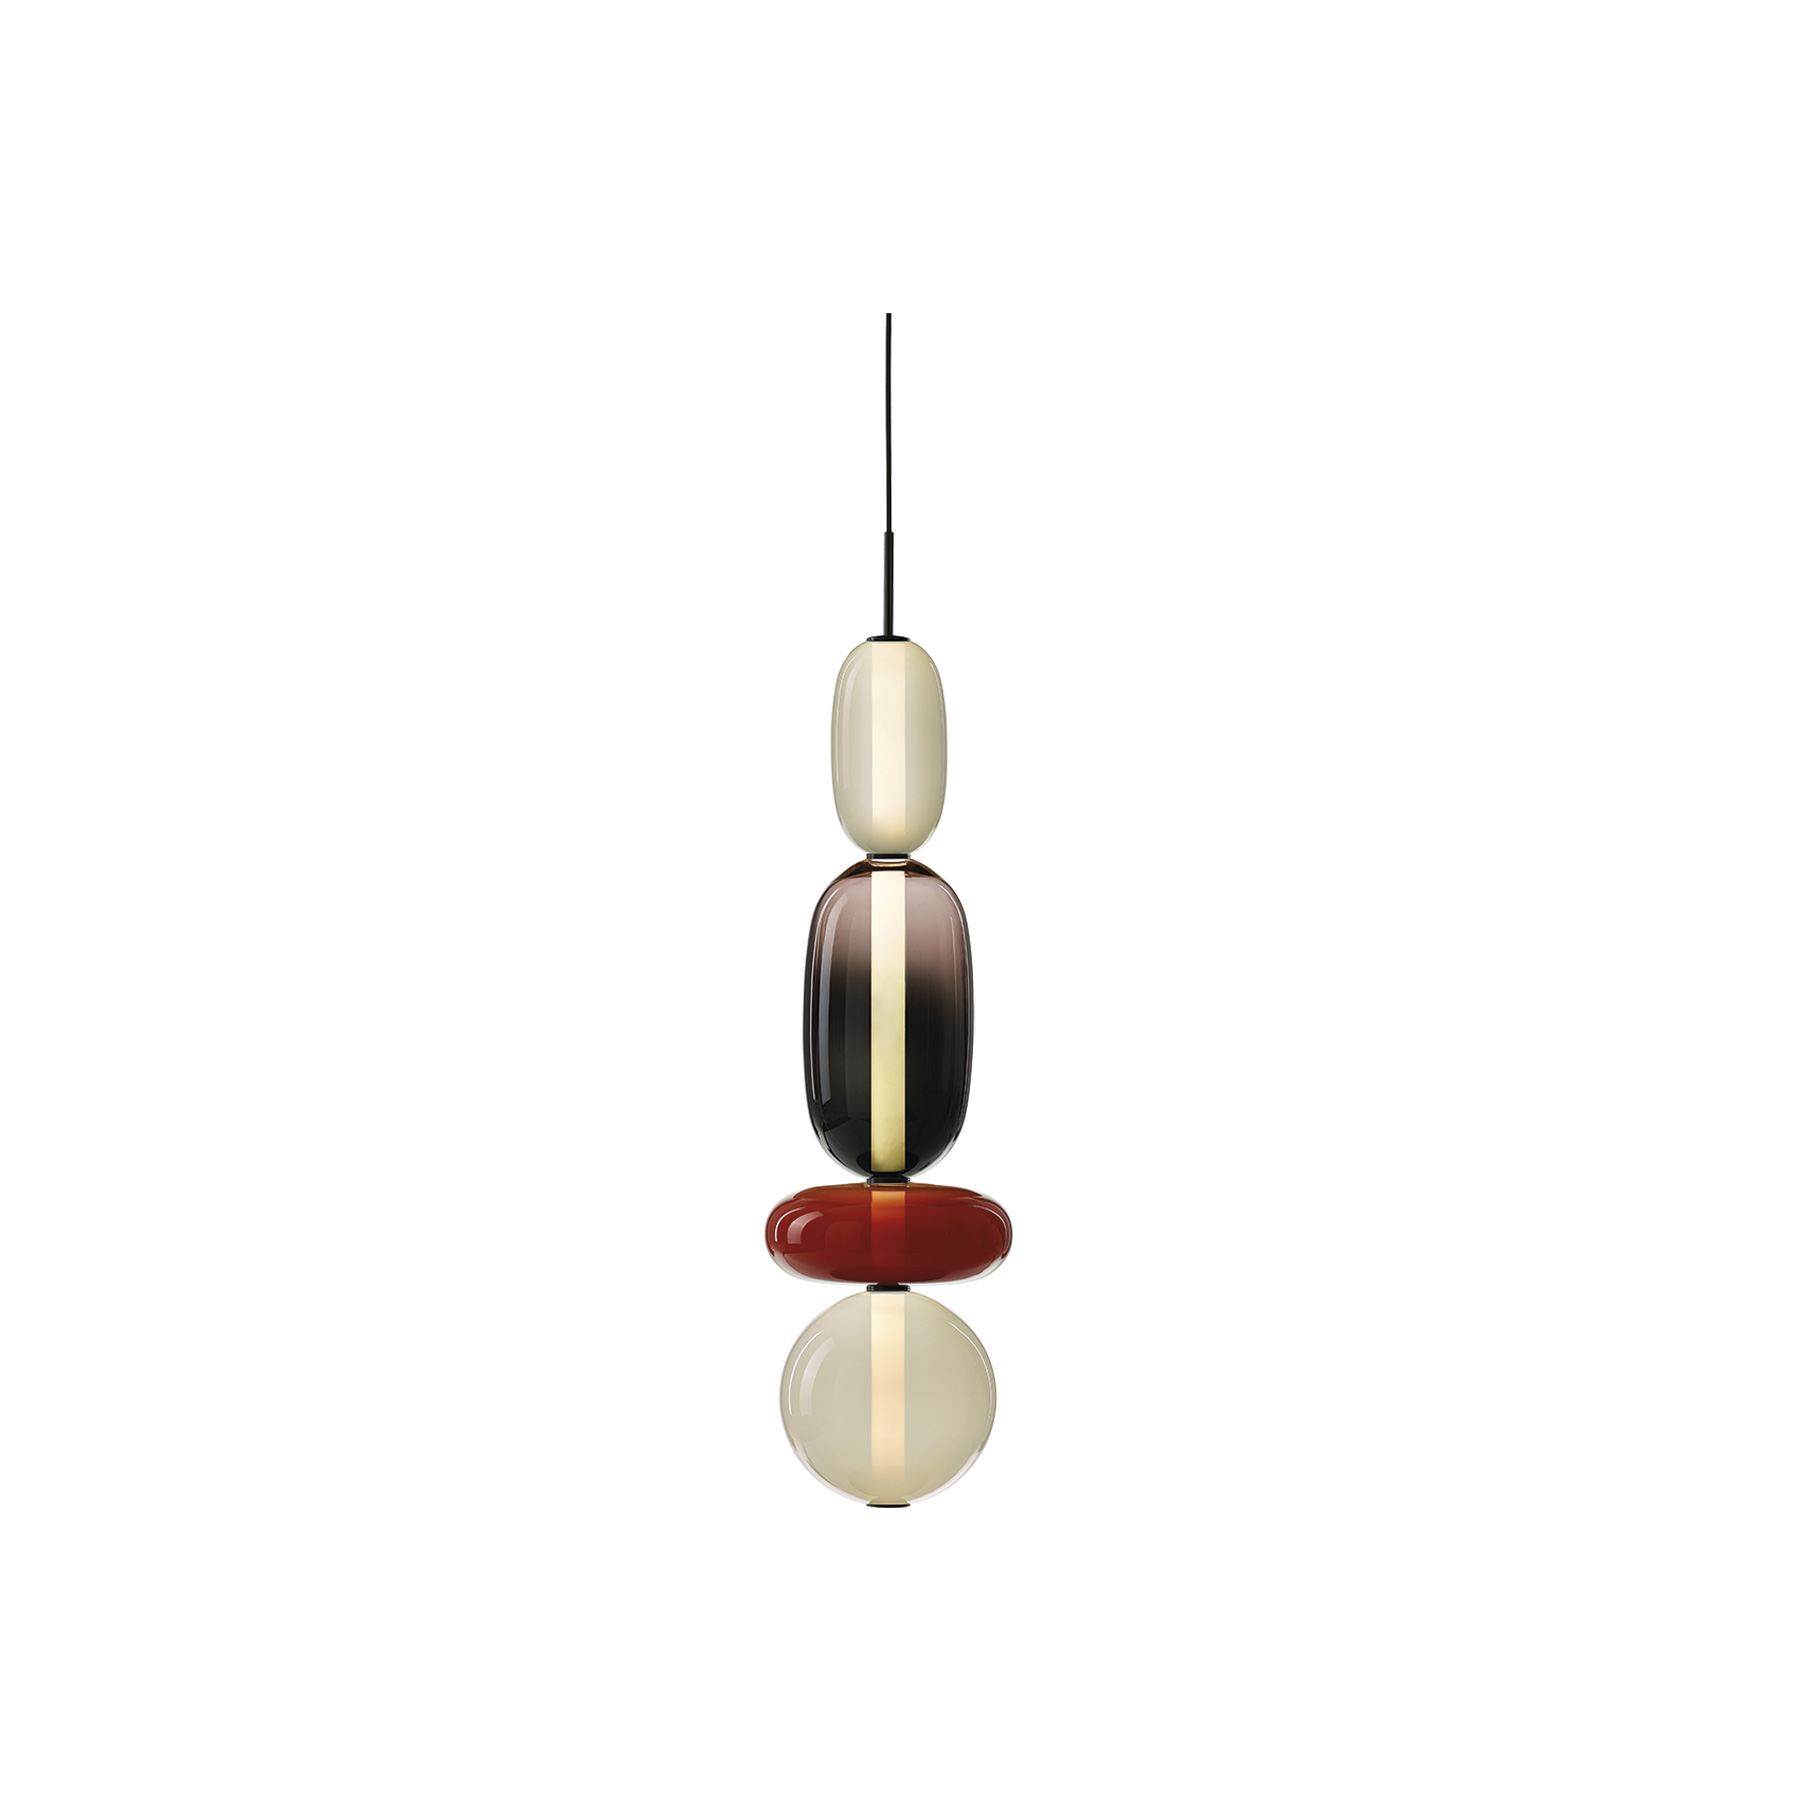 Pebbles Long Pendant Lamp - Keepsakes of treasured memories.